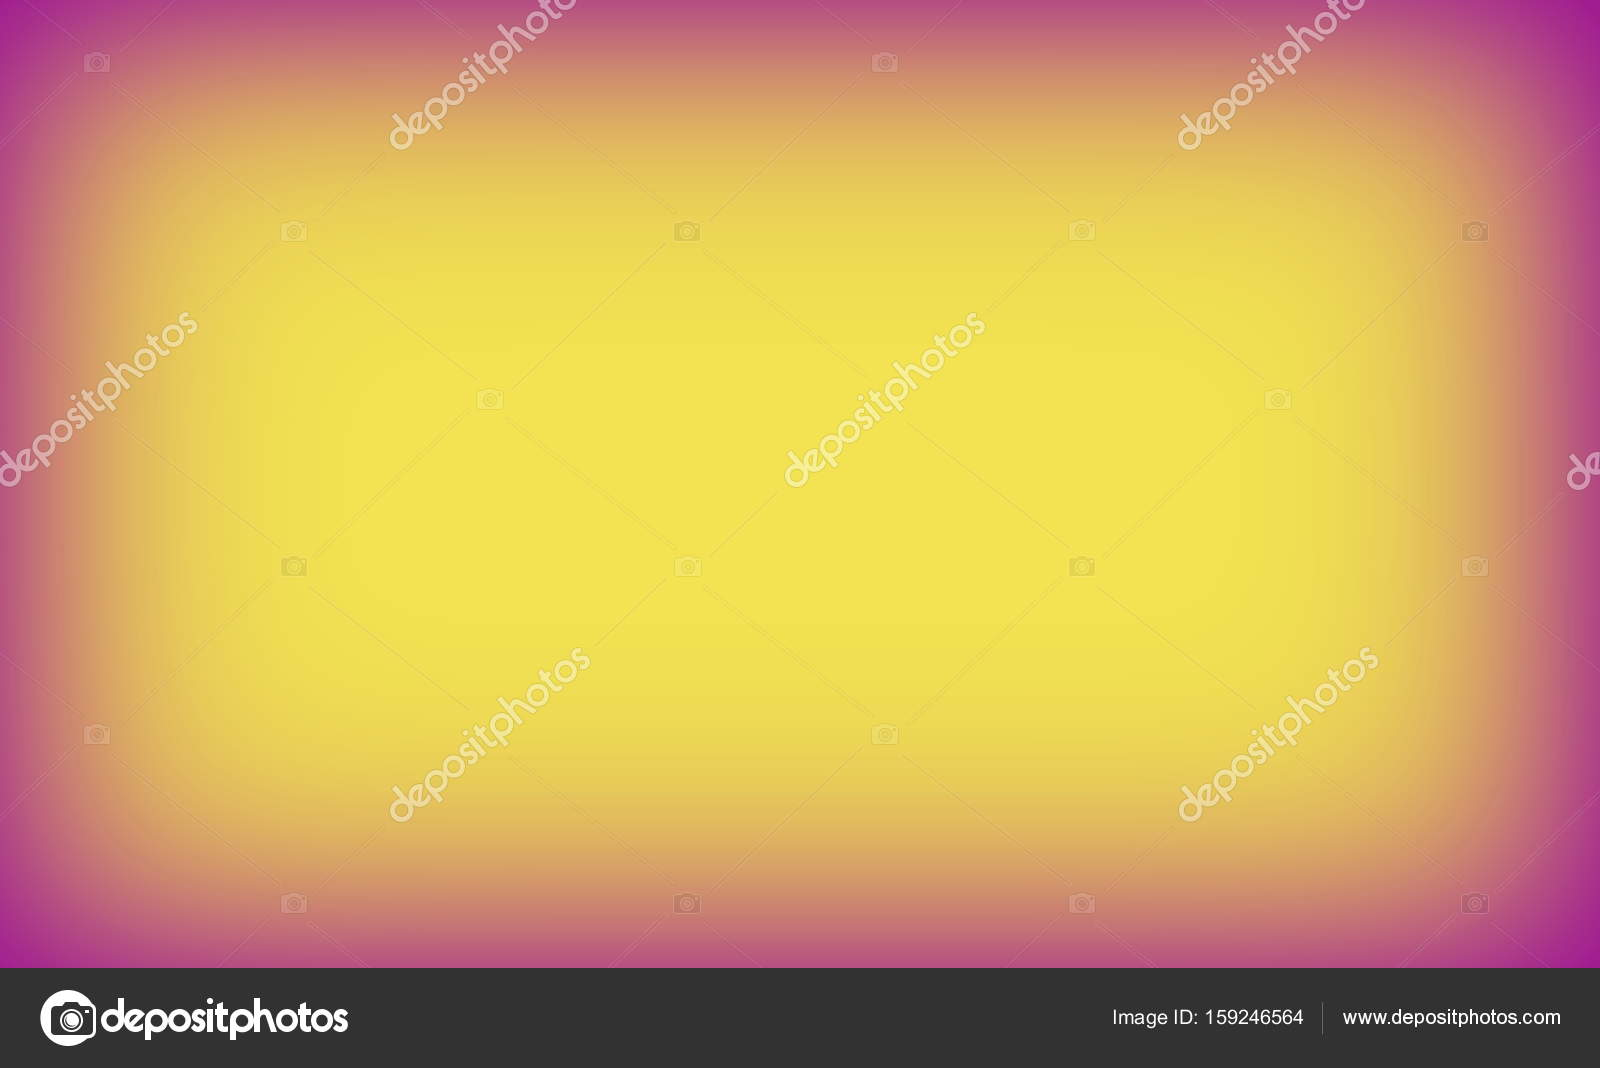 Purple And Yellow Color Background Texture For Business Card Design